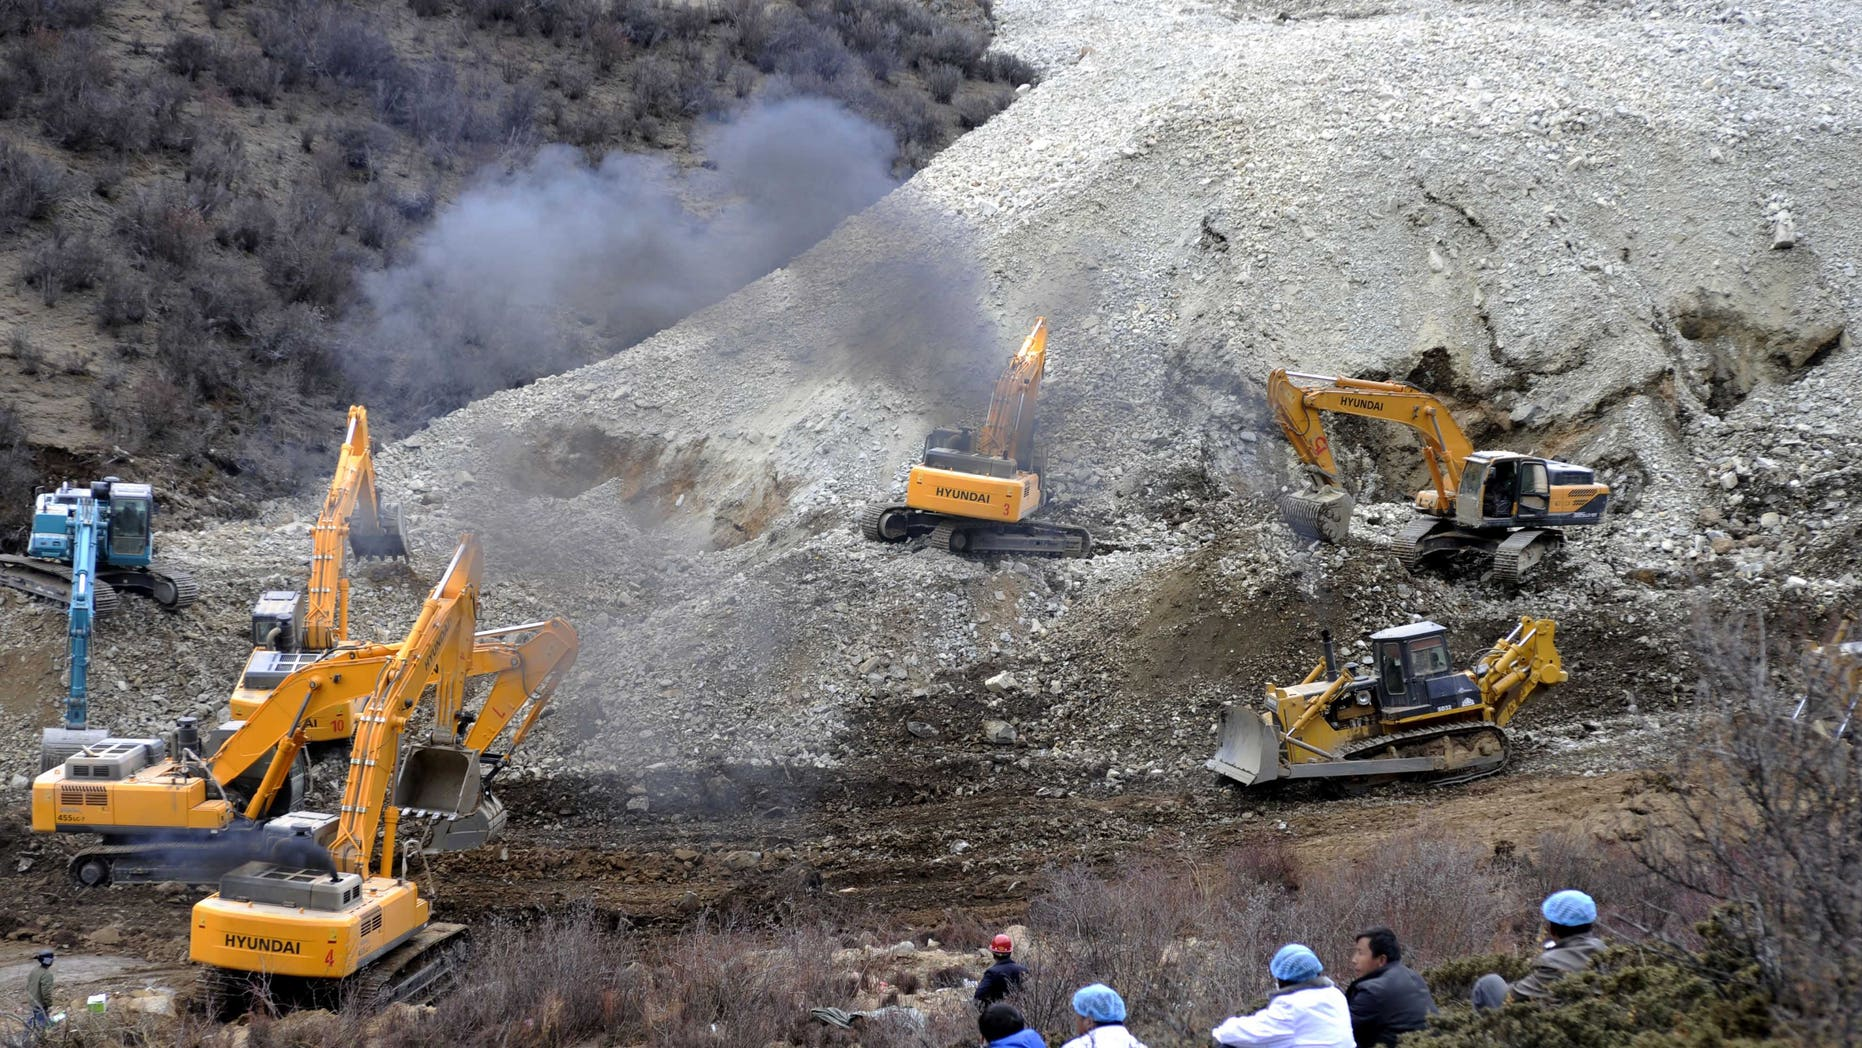 March 29, 2013 - Earthmovers remove rocks and mud on the scene where a landslide hit a mining area in Maizhokunggar County of Lhasa, southwest China's Tibet Autonomous Region.